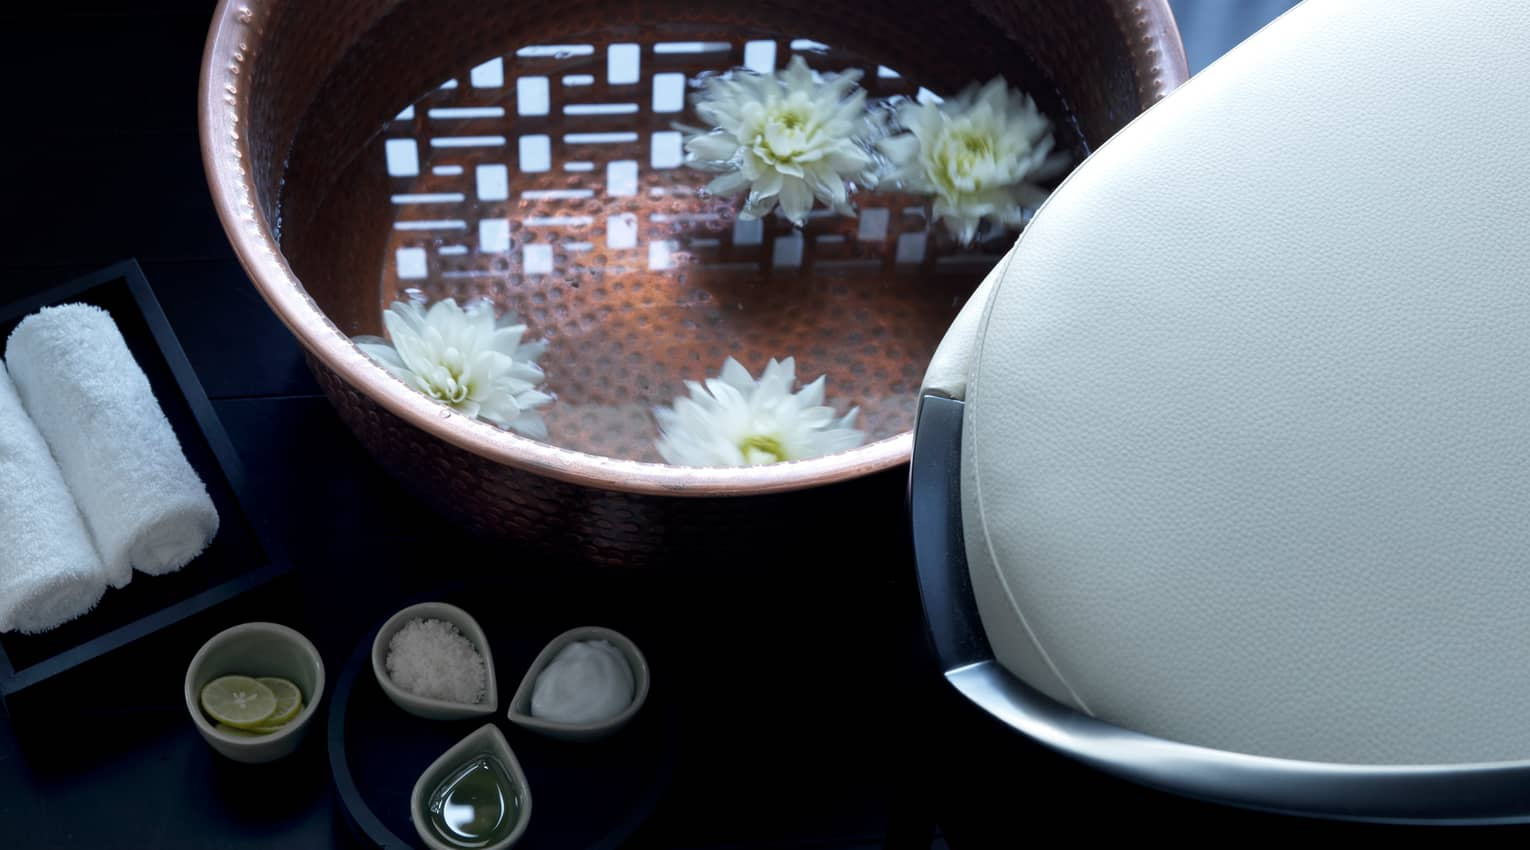 Close-up of copper bowl with water, floating white flowers, small dishes with spa salts, oil and lemons